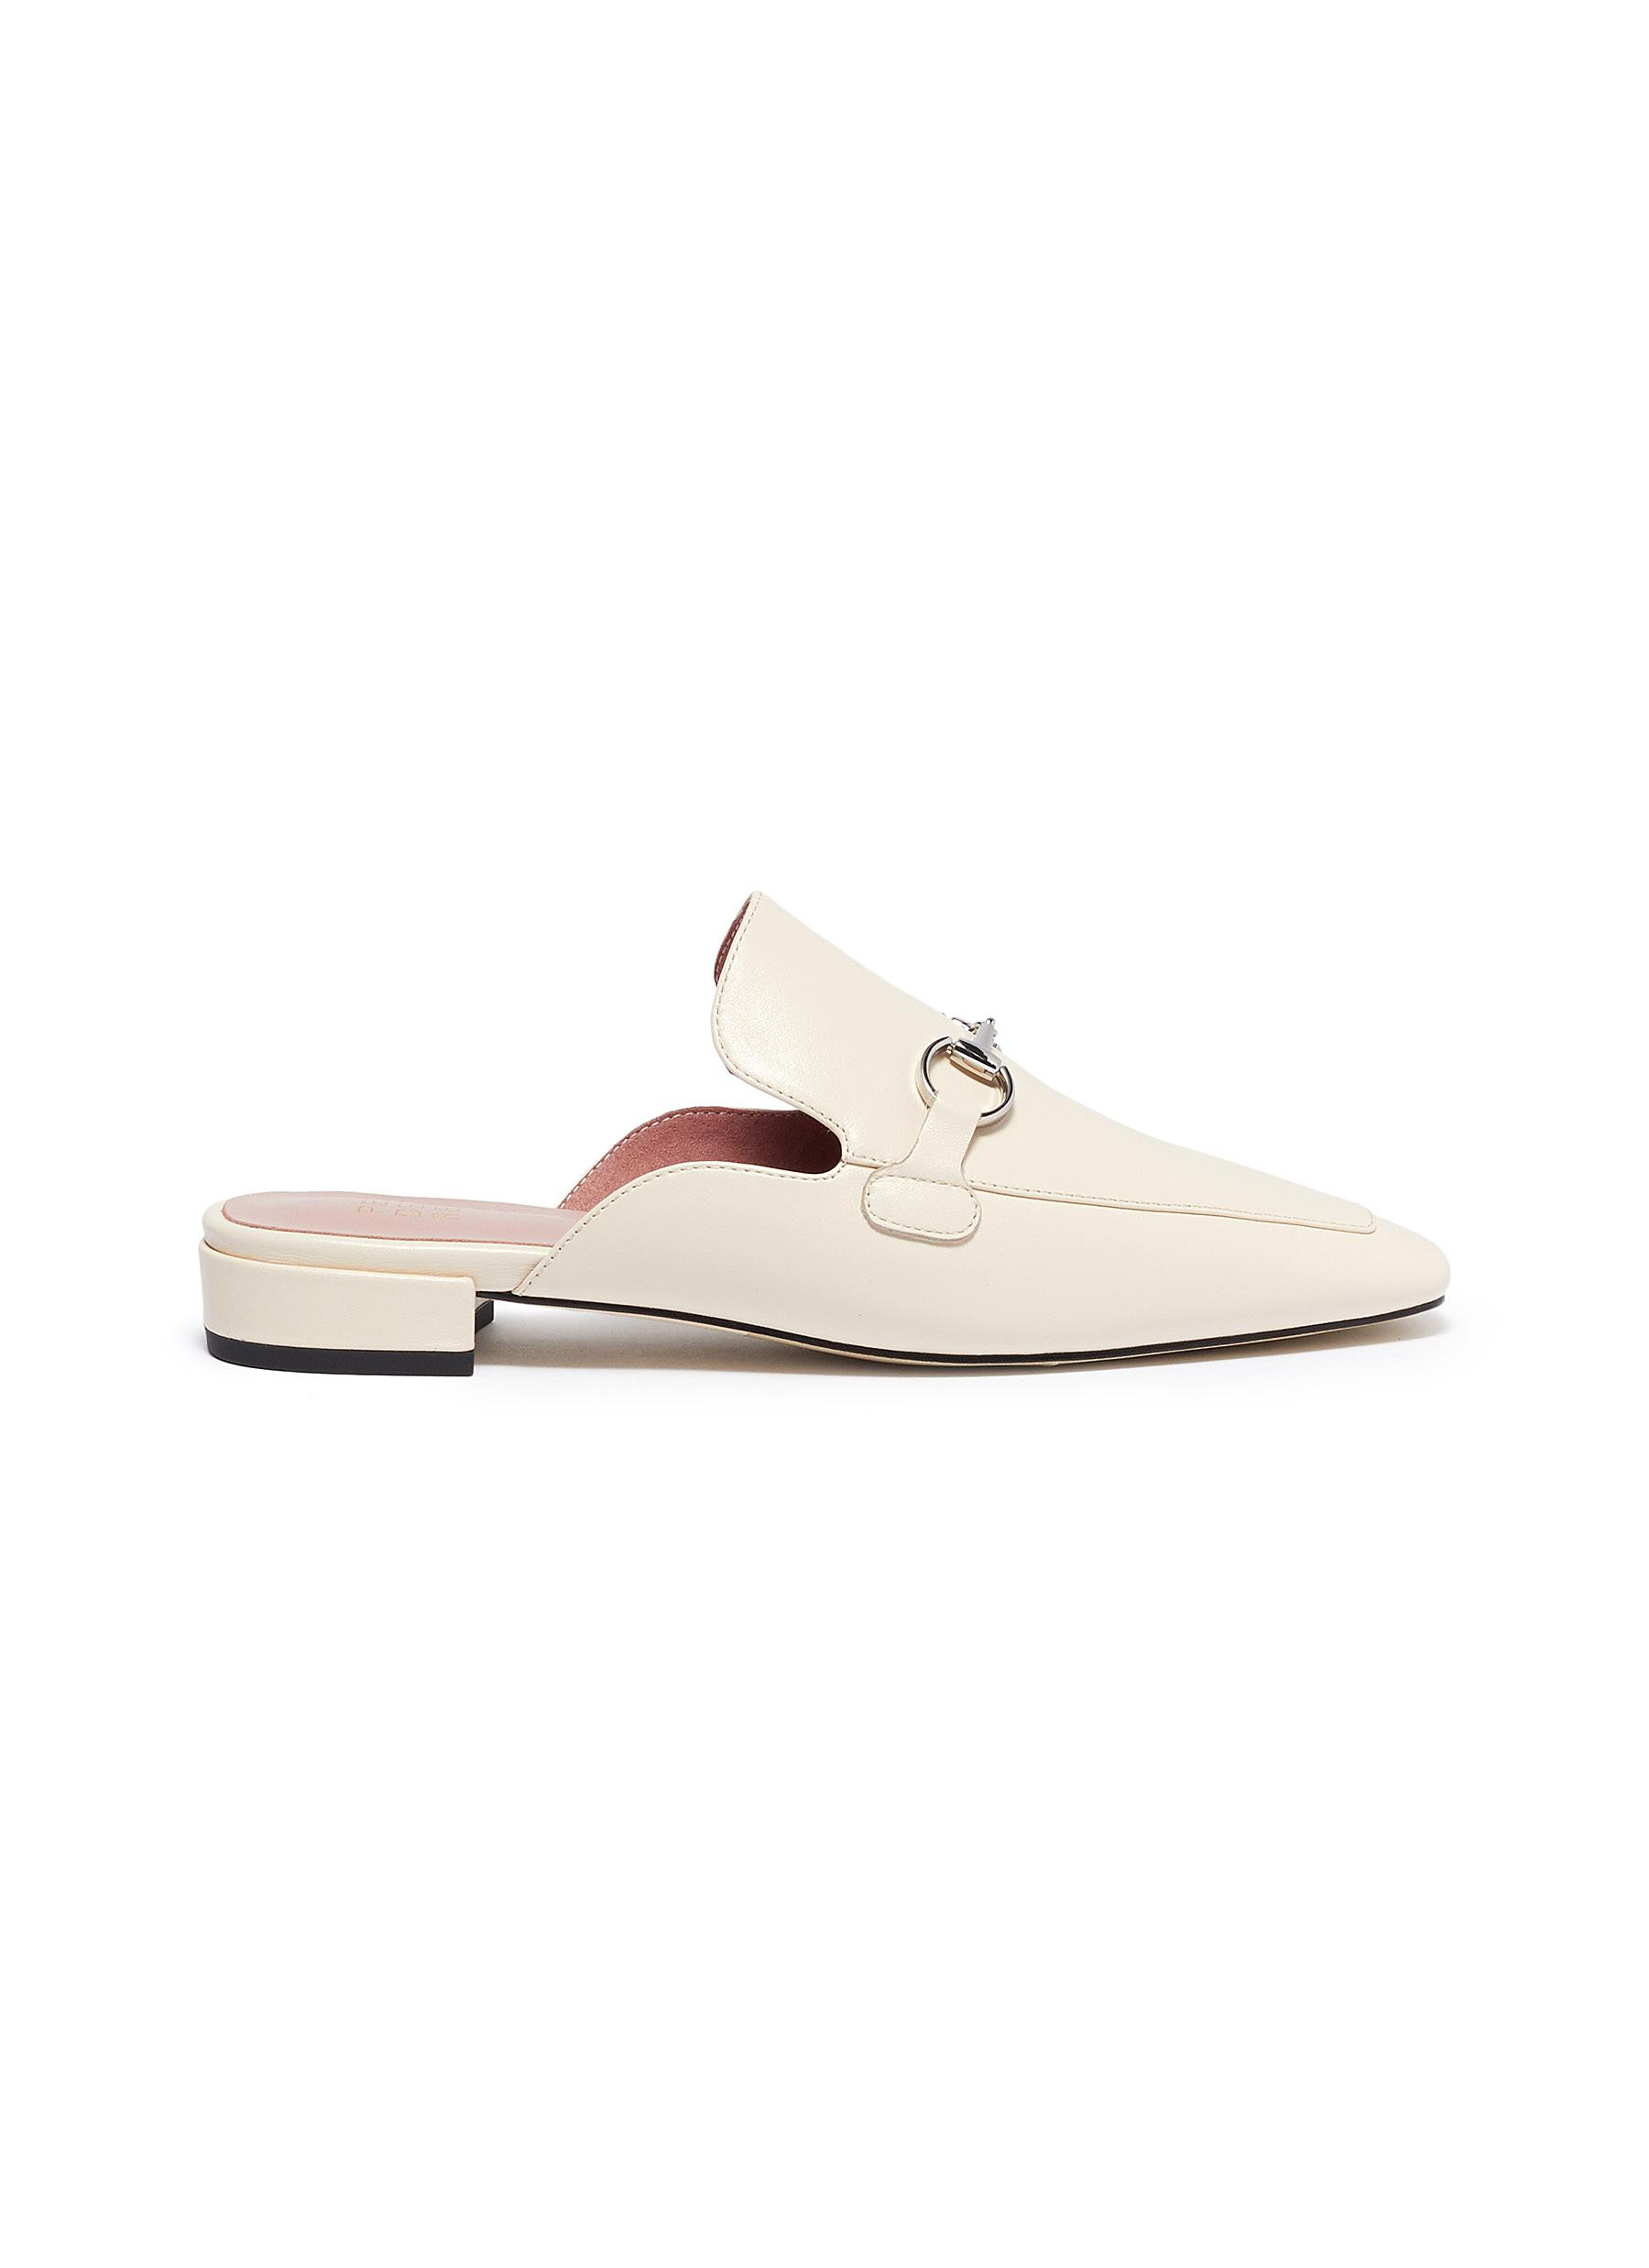 Zac horsebit leather loafer slides by Pedder Red